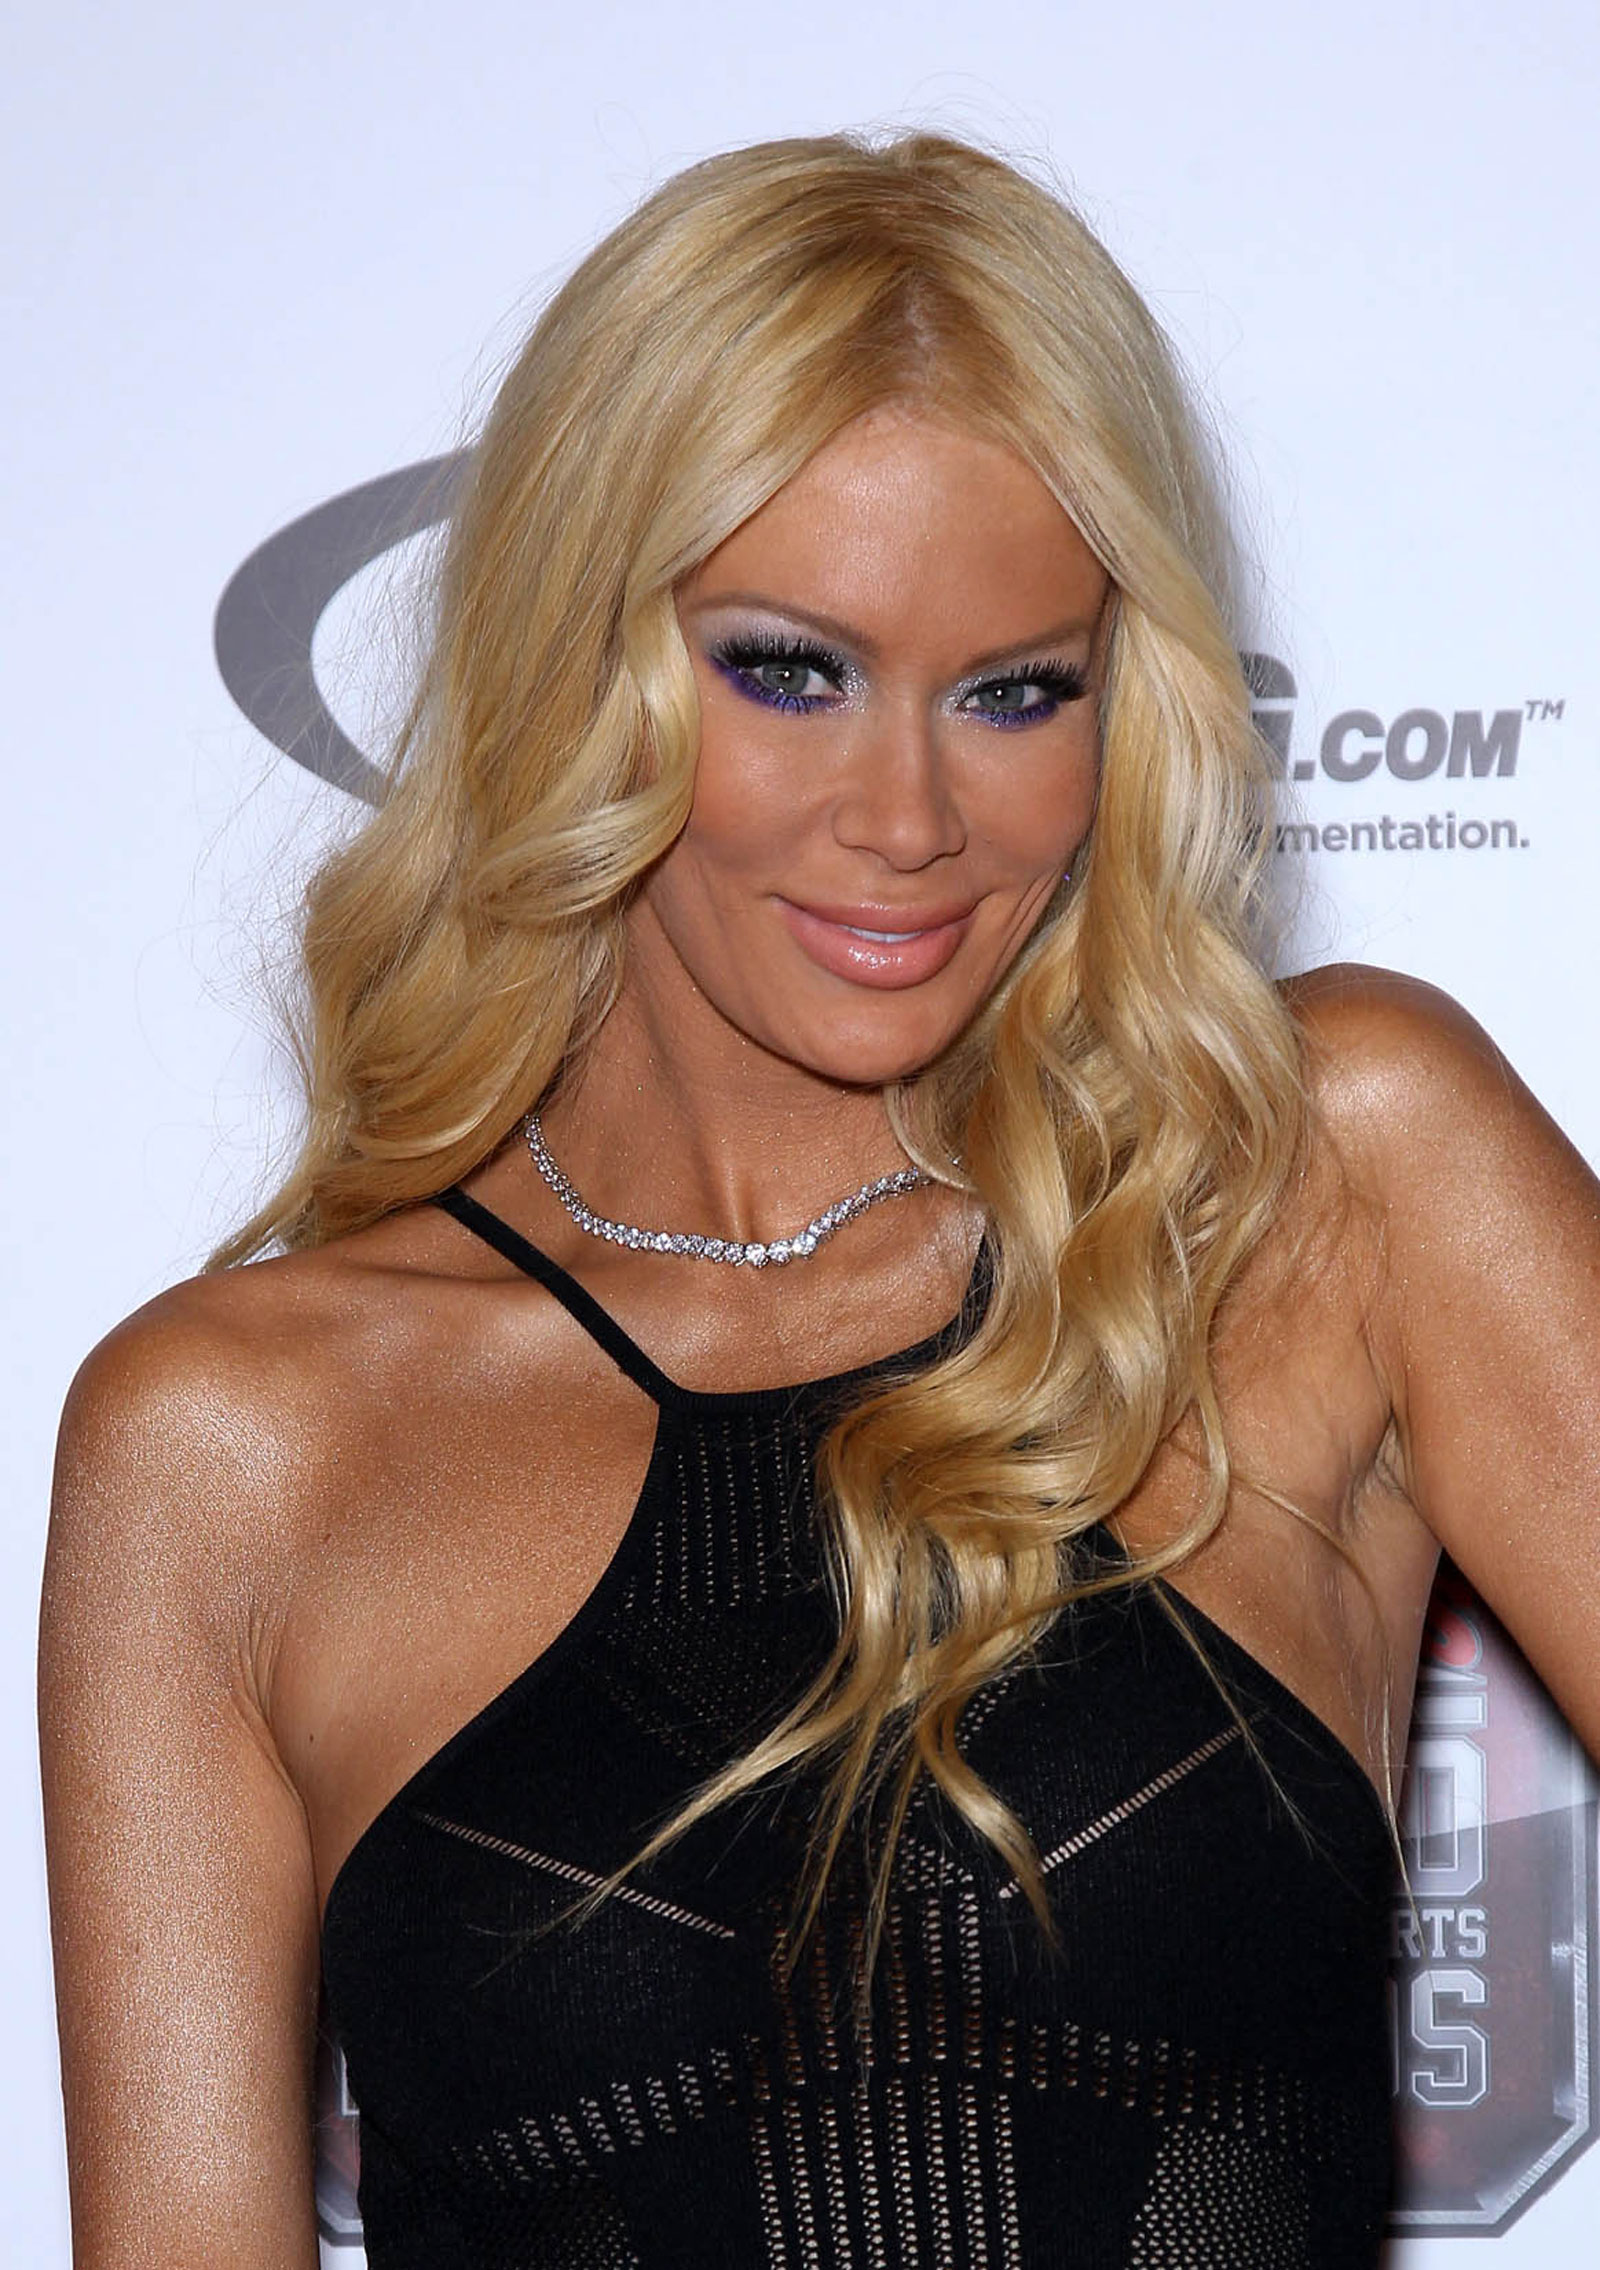 Porn Star Defends Donald Trump And You Won't Believe it